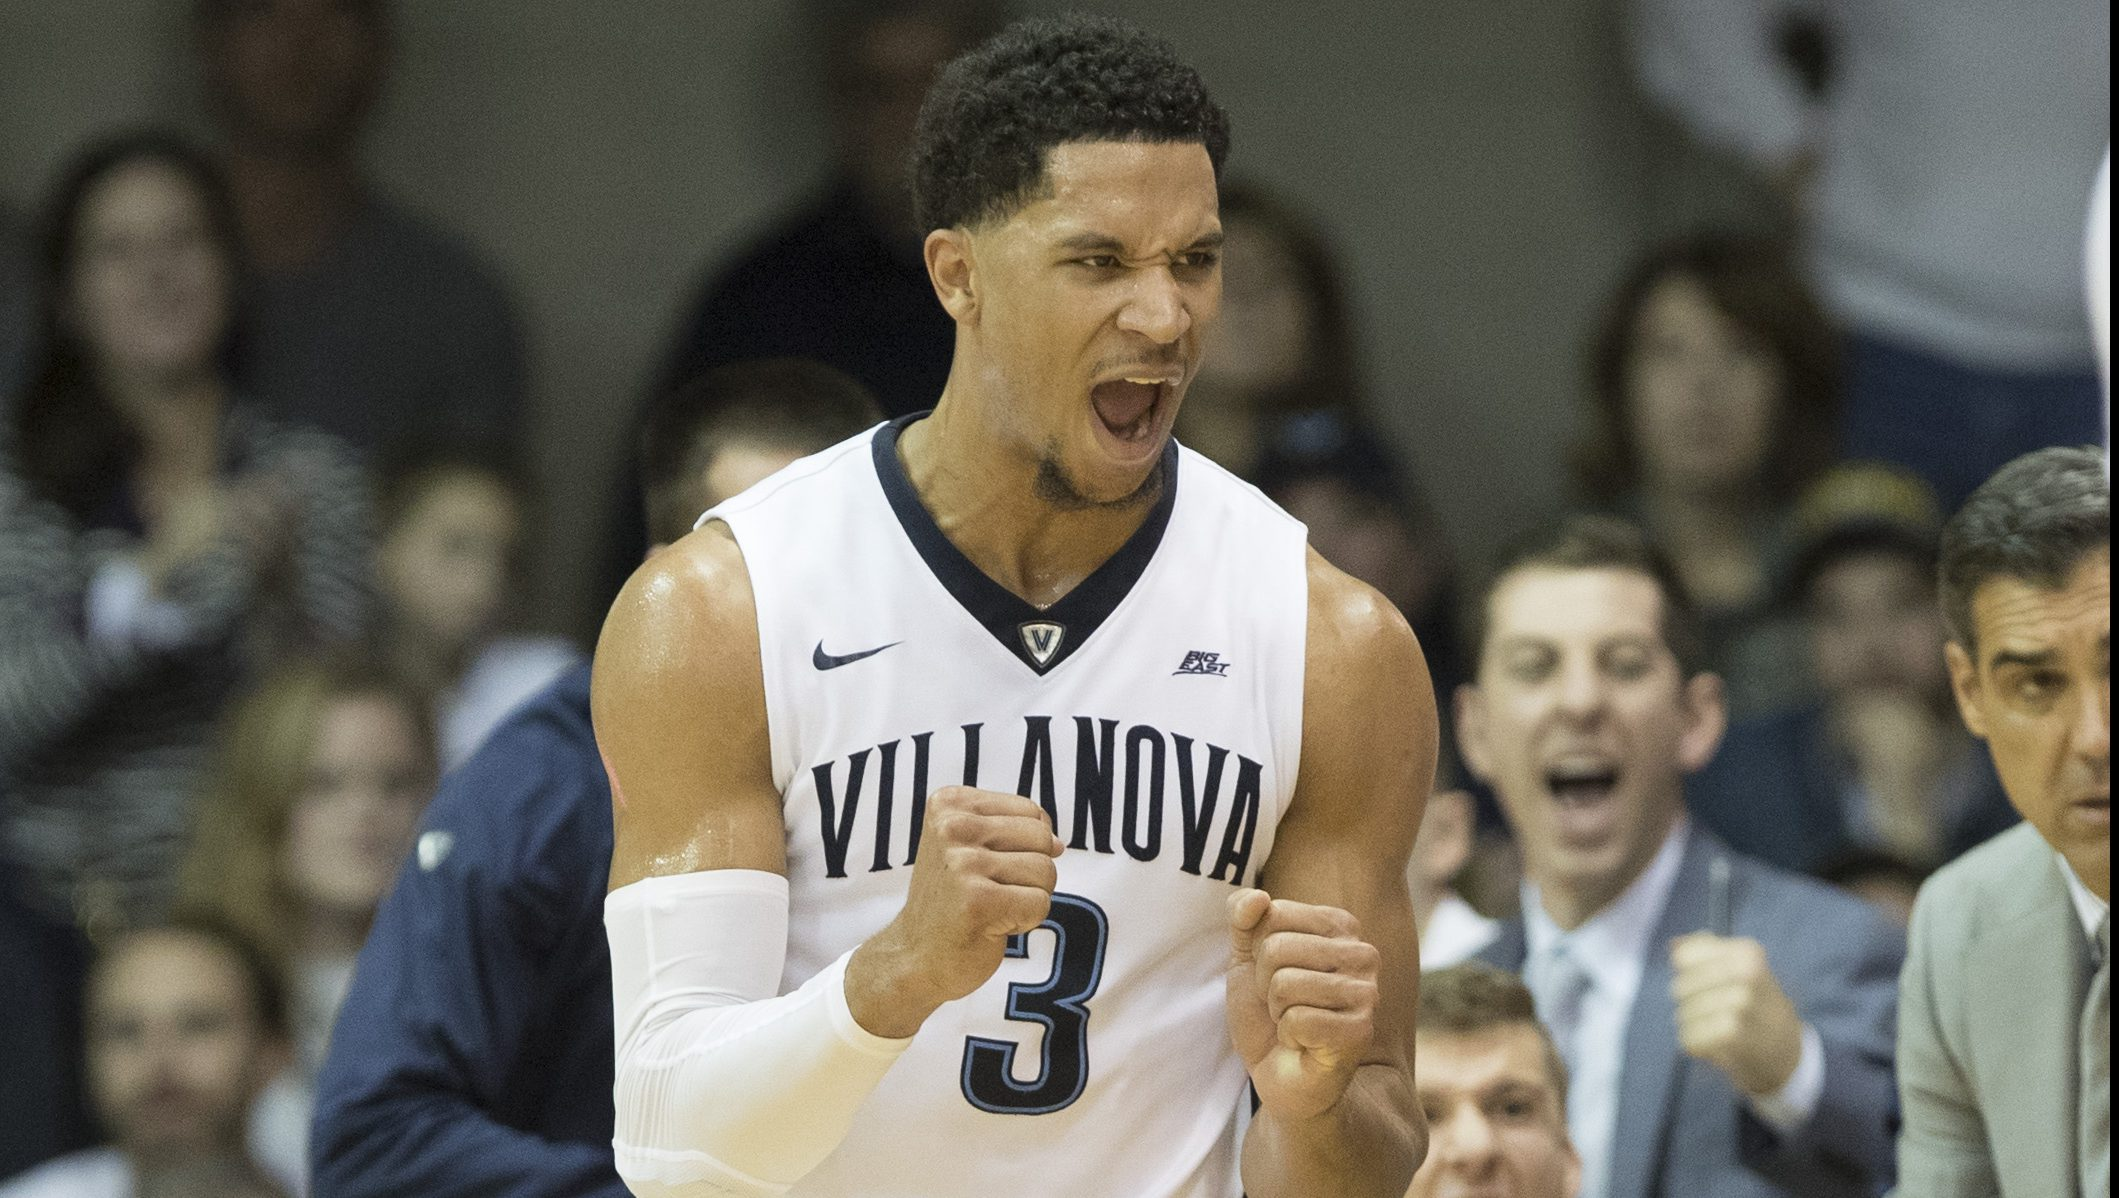 VILLANOVA, PA - DECEMBER 03: Josh Hart #3 of the Villanova Wildcats reacts in front of Lamarr Kimble #0 of the Saint Joseph's Hawks in the first half at The Pavilion on December 3, 2016 in Villanova, Pennsylvania. The Villanova Wildcats defeated the Saint Joseph's Hawks 88-57. (Photo by Mitchell Leff/Getty Images)